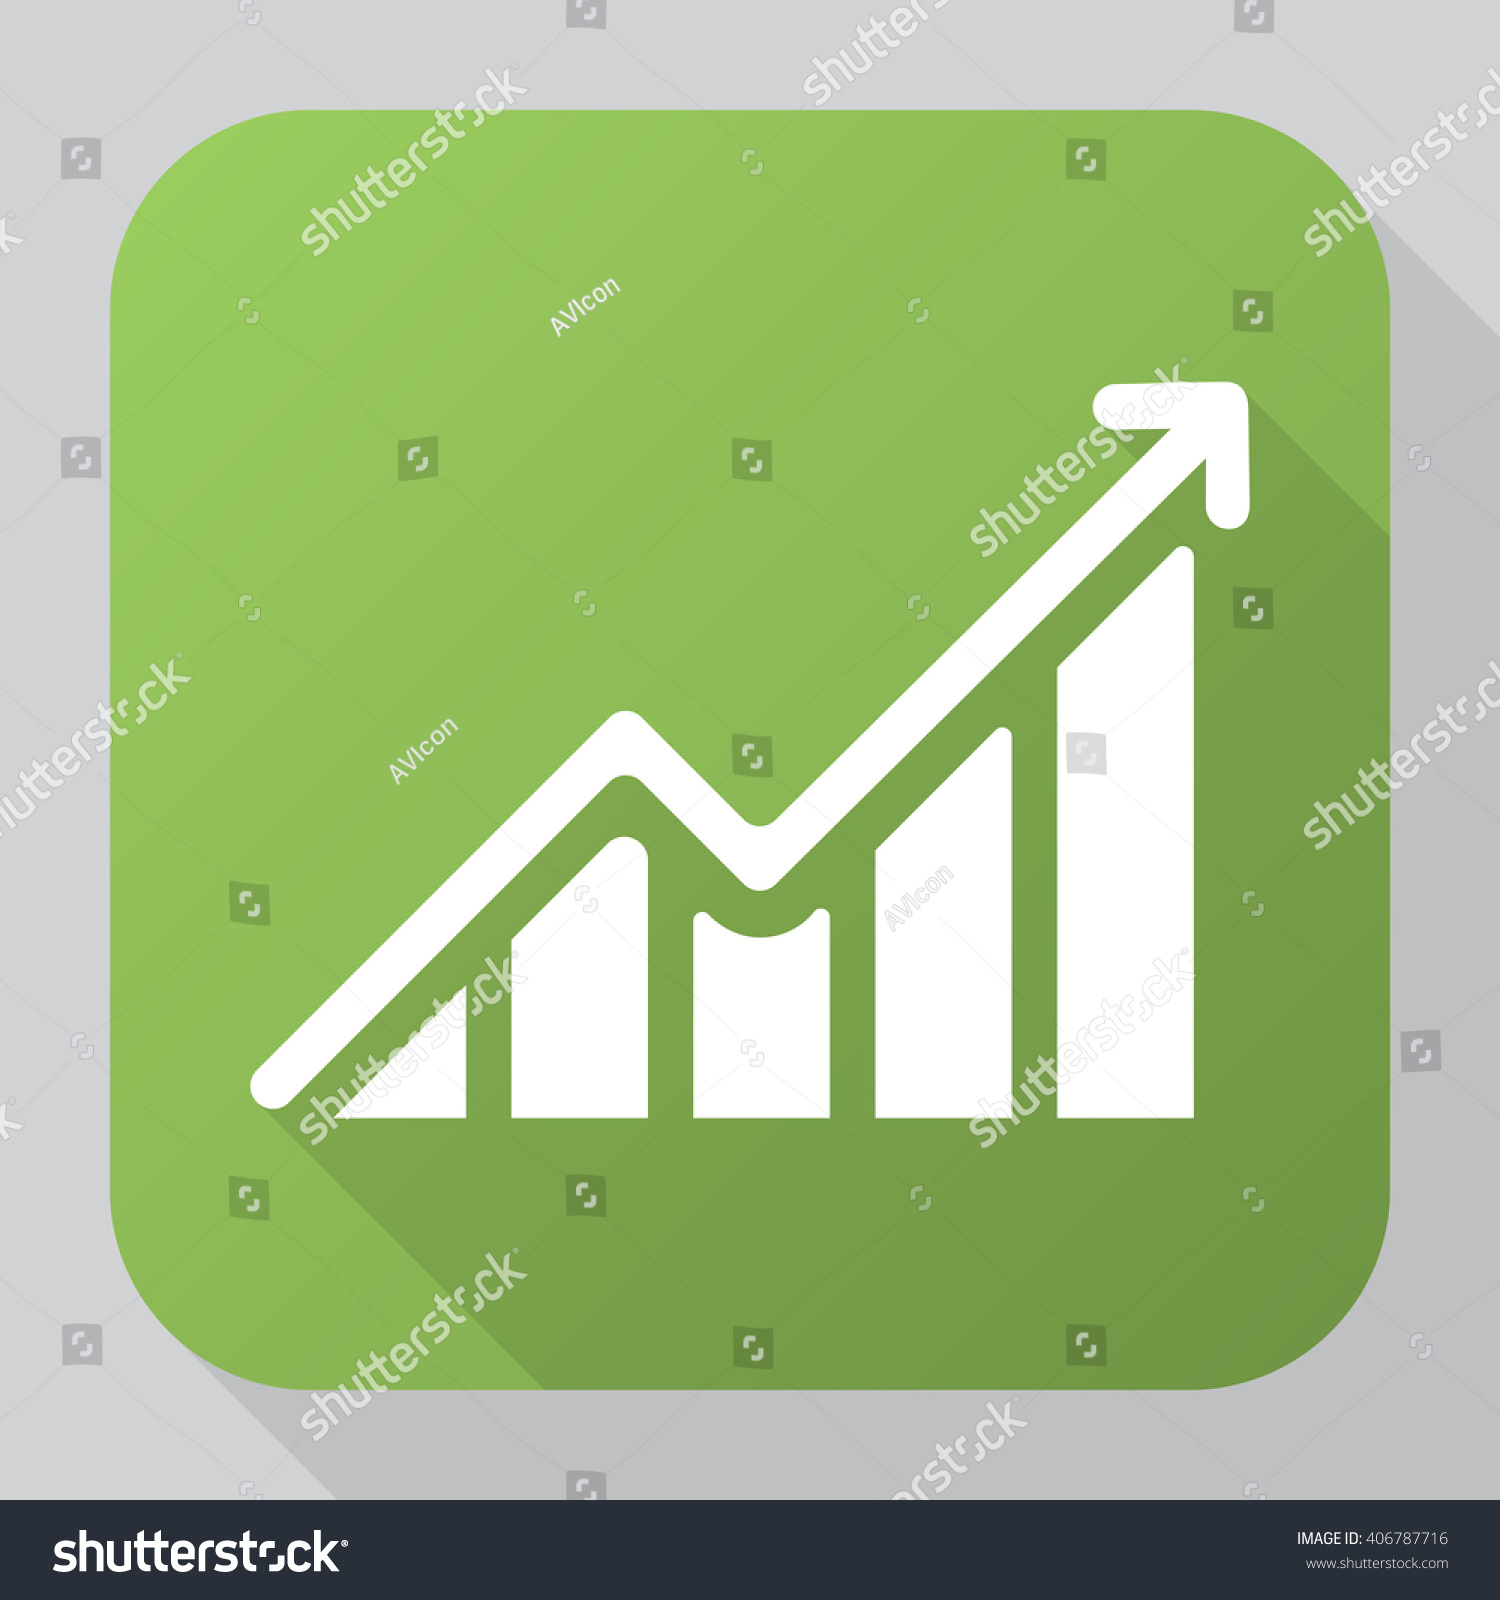 hight resolution of growing graph icon vector solid illustration pictogram isolated on gray long shadow